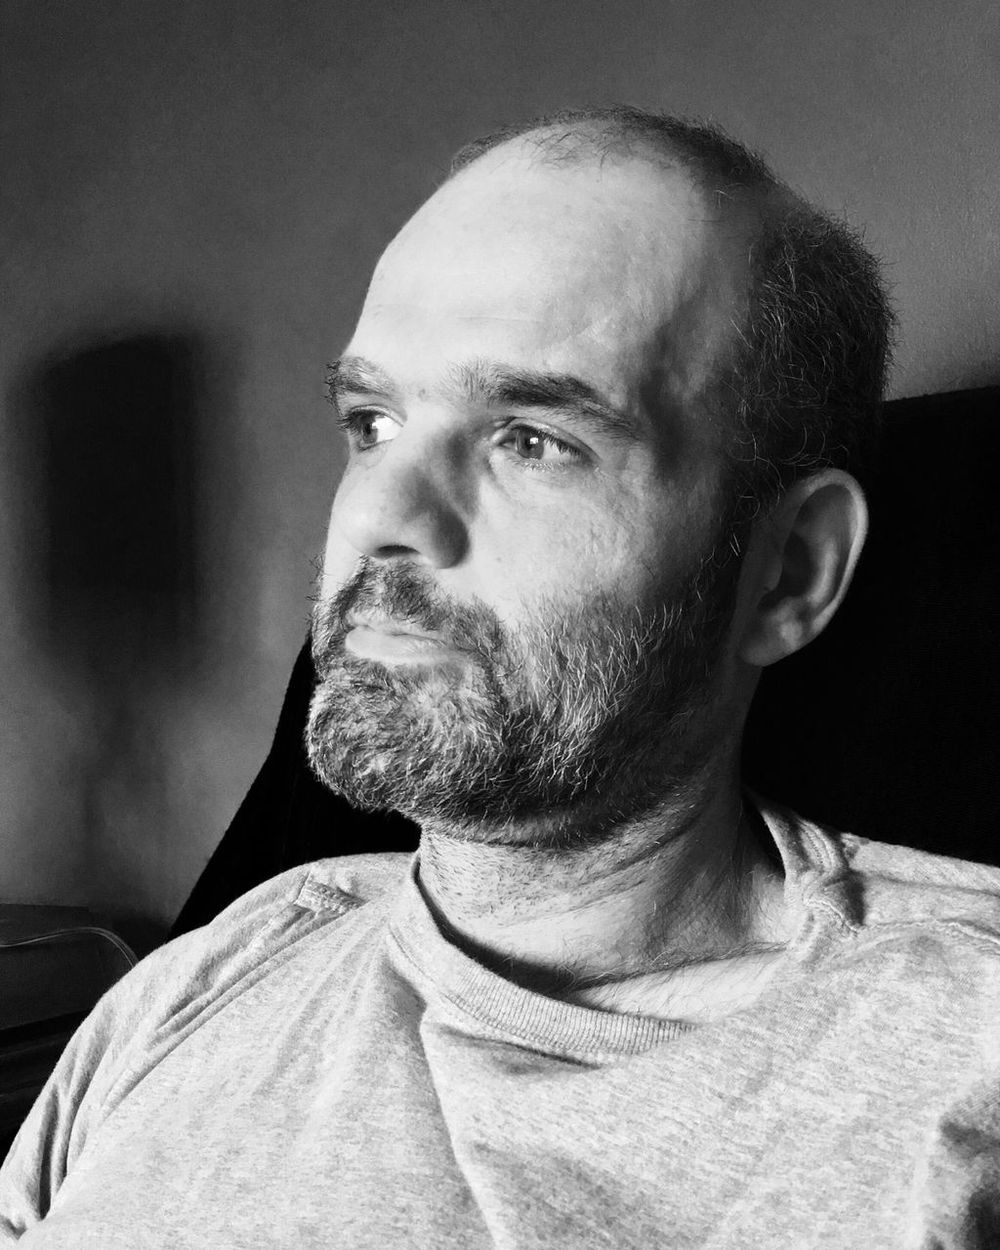 Real People Mature Men One Person Beard Lifestyles Leisure Activity Home Interior Mature Adult Indoors  Portrait Blackandwhite Natural Light Portrait Close-up Day Pensive Salt And Pepper Hair DISTINGUISHED Casual Clothing Balding Man Balding Bald Is Beautiful Handsome Bearded Rugged